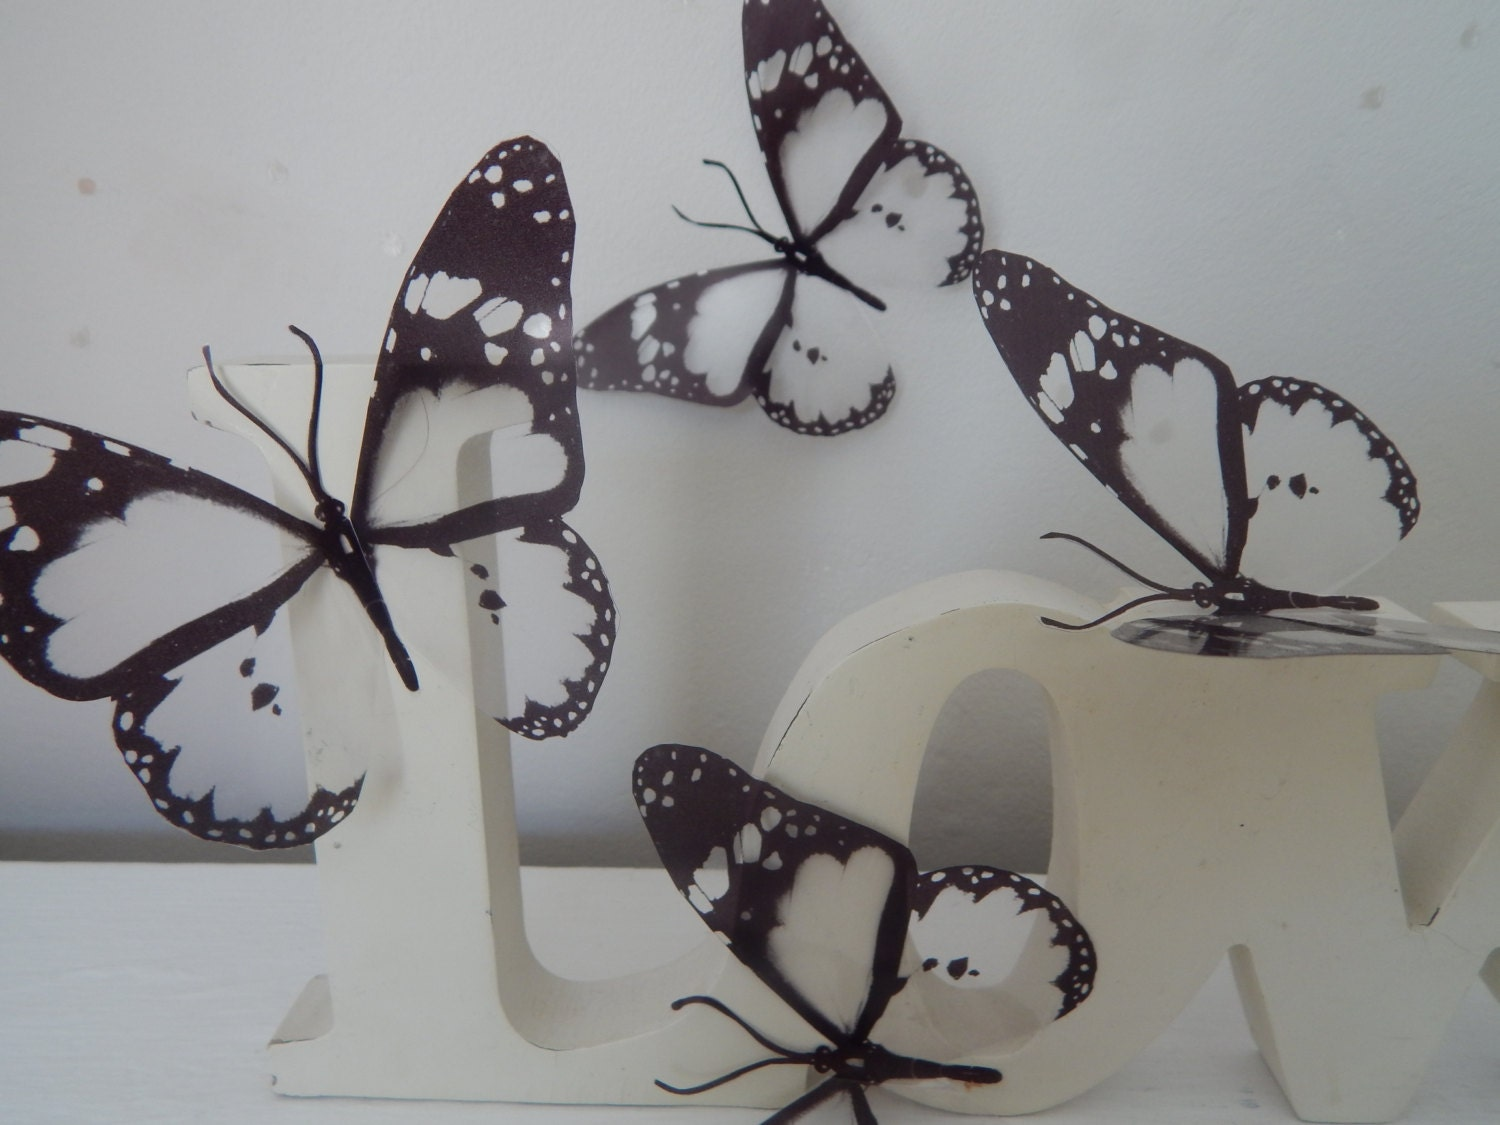 3d butterfly stickers black and white butterfly 3d wall art in 3d butterfly stickers black and white butterfly 3d wall art in flight wall art decals window wall decal for home decor nature wall art